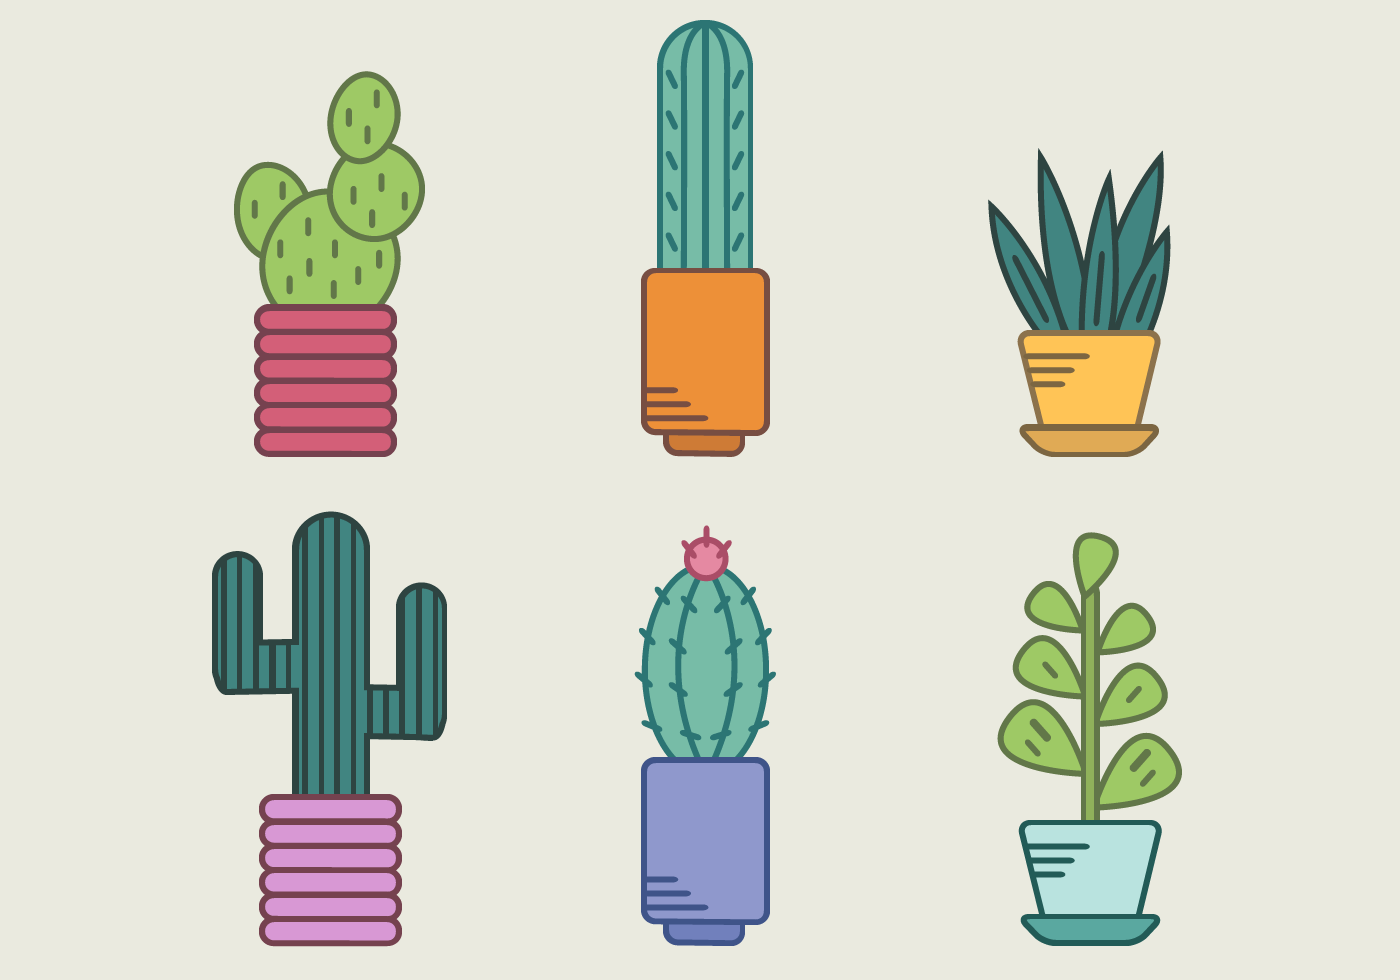 Free Cactus Vector - Download Free Vector Art, Stock Graphics & Images